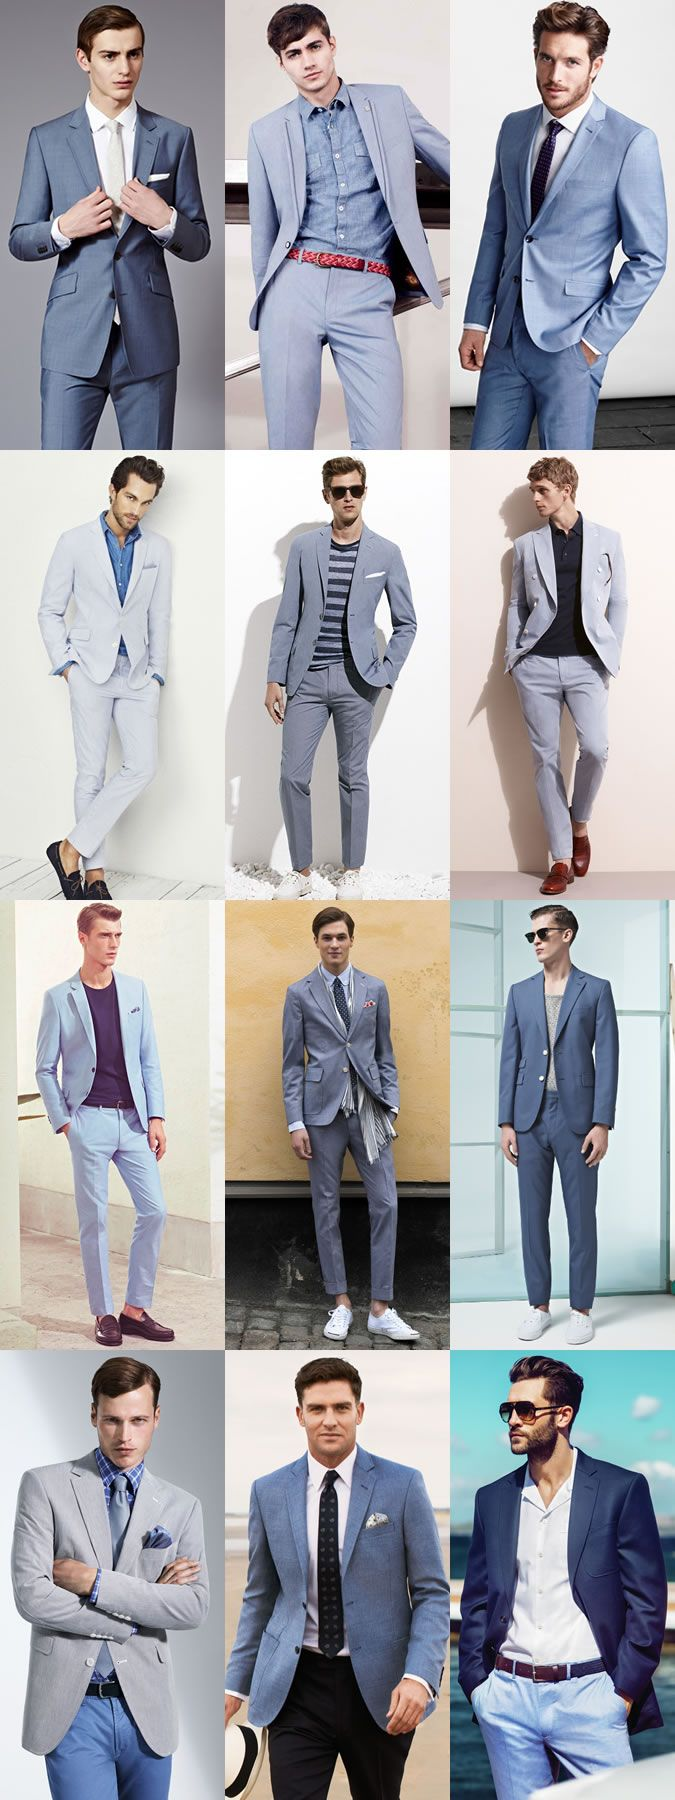 5 Key Men's Suit Styles For 2014 Spring/Summer: The Light Blue Suit - Full Suit & Separates Lookbook Inspiration #Davids05 #LADavids #DisfrutaelMomento https://www.facebook.com/pages/Sexi/1402482520062913 https://www.facebook.com/pages/Disfruta-el-Momento-Enjoy-the-Moment/750346691726285?ref=hl https://www.facebook.com/media/set/?set=a.10205594480199469.1073741833.1177040085&type=1&l=e18e2f7c91